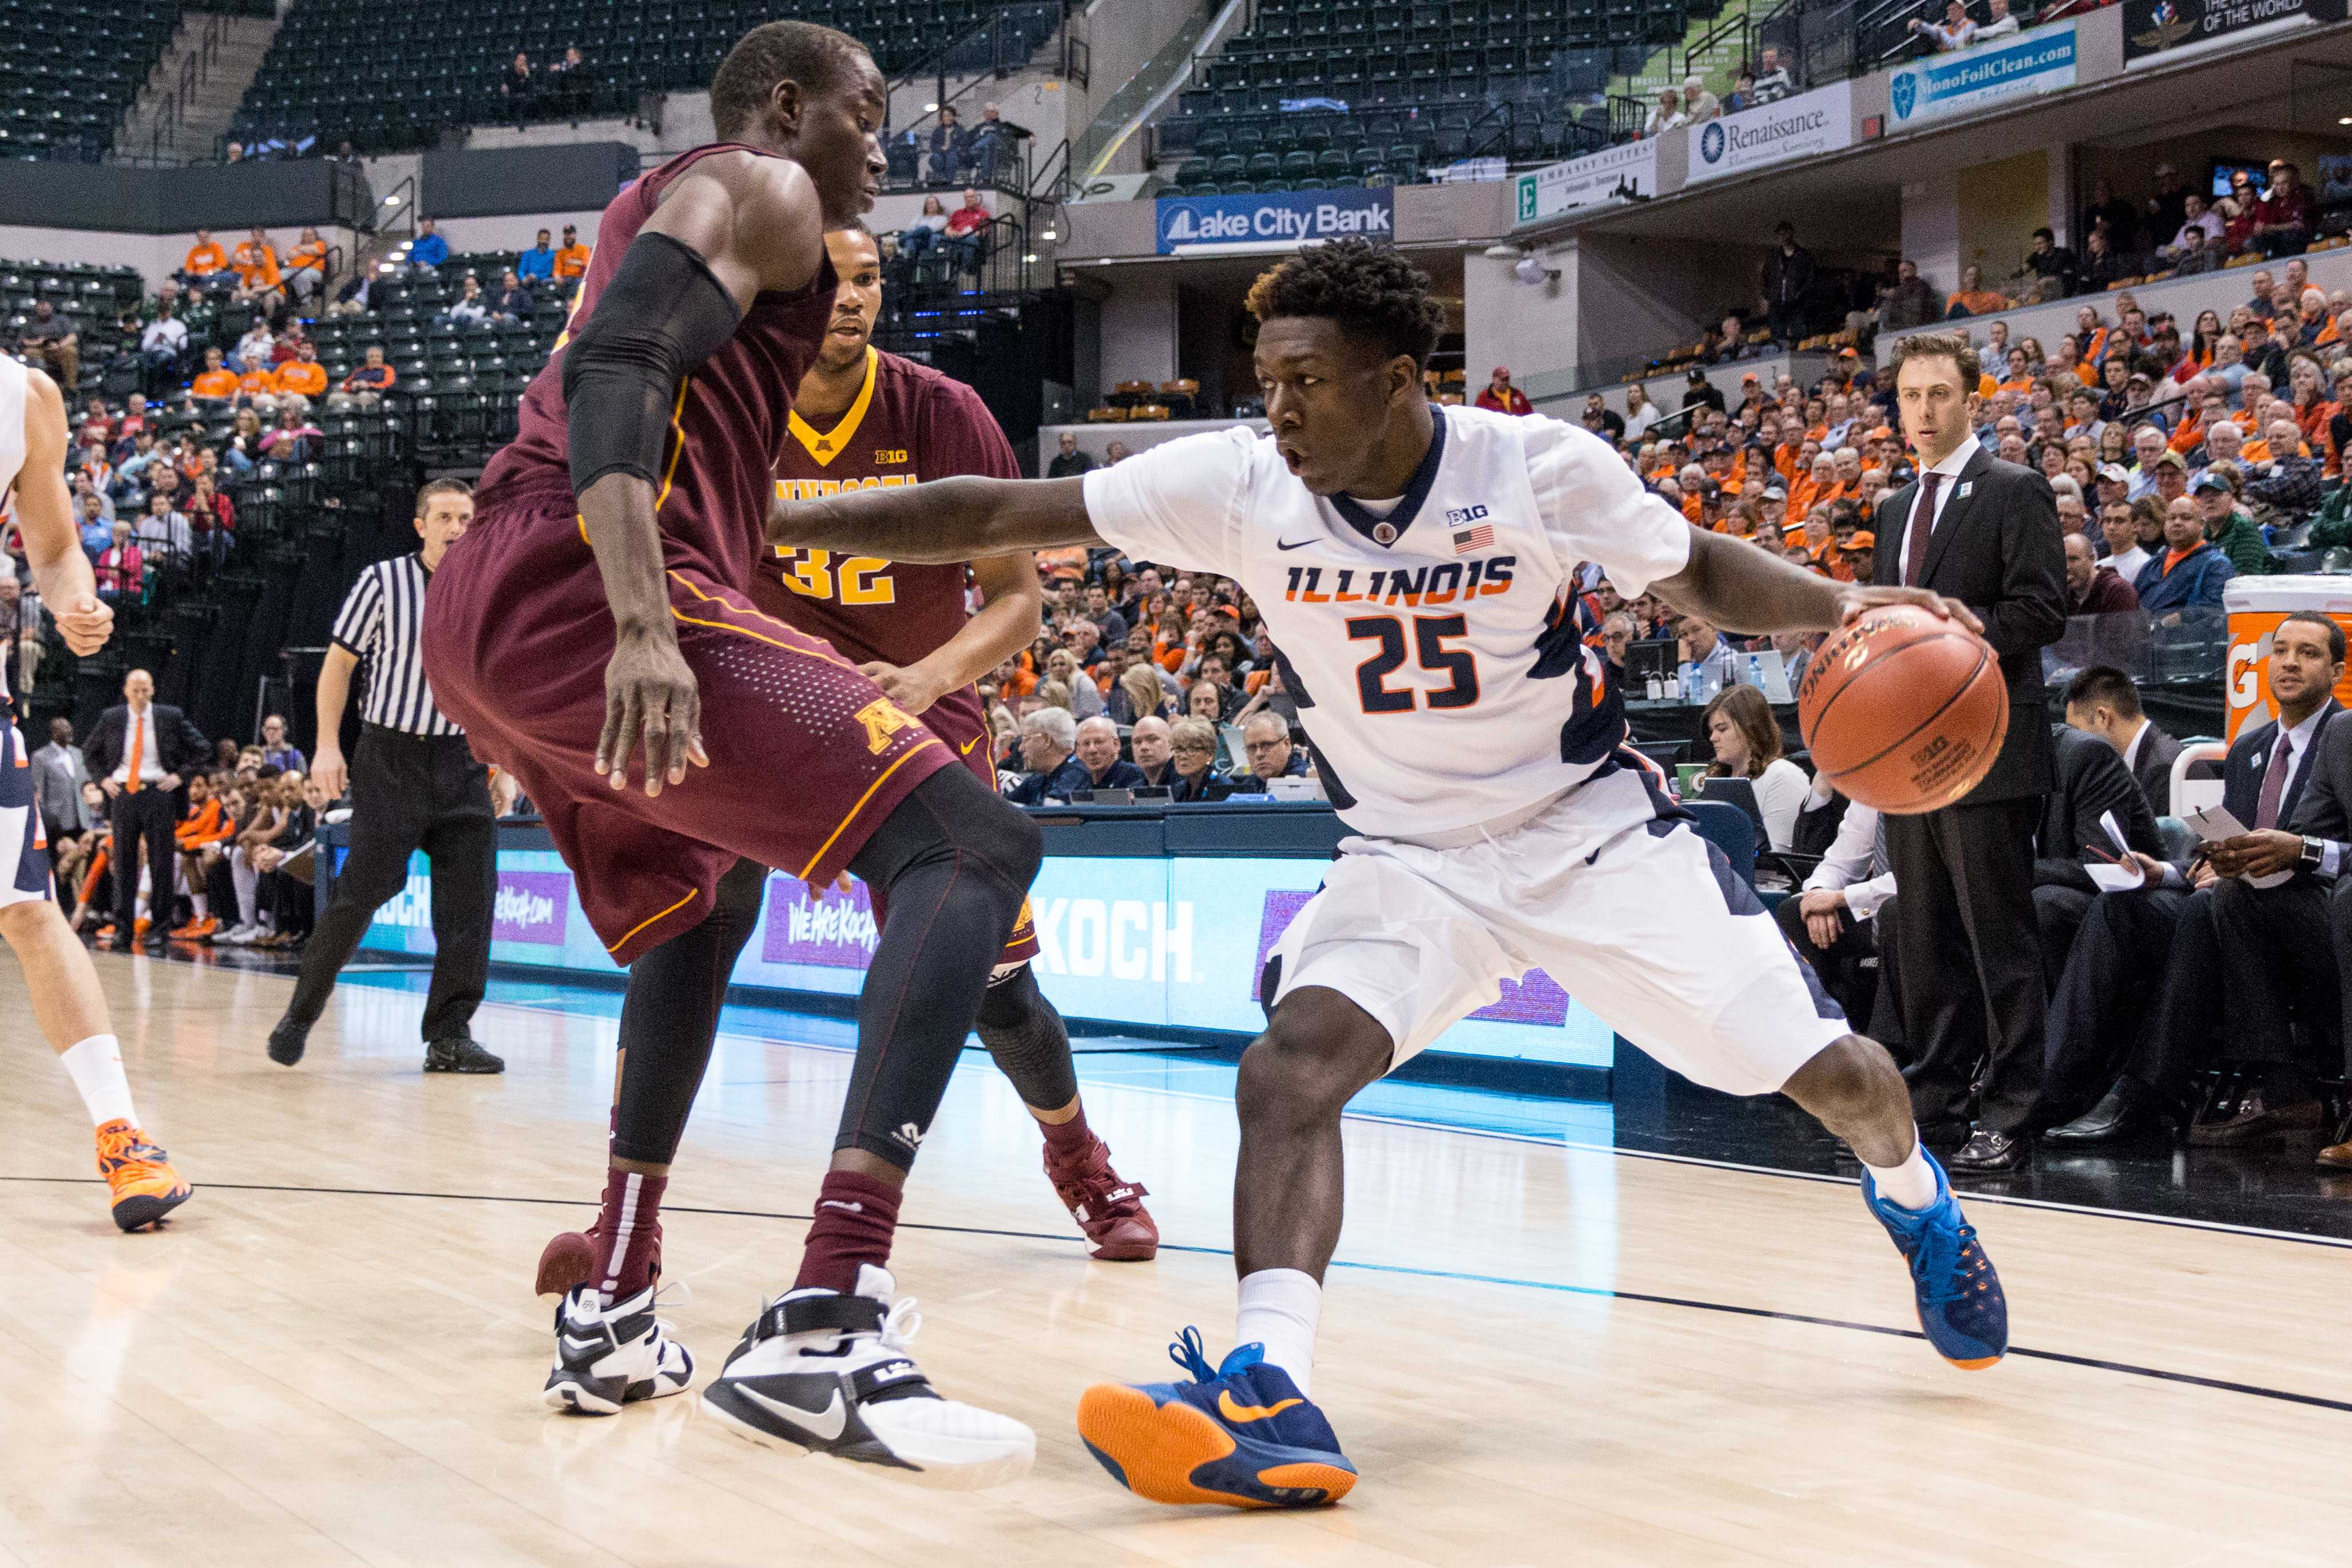 Kendrick Nunn and the Illini got off to a good start in the Big Ten Tournament, beating Minnesota 85-52 in Wednesday's game.